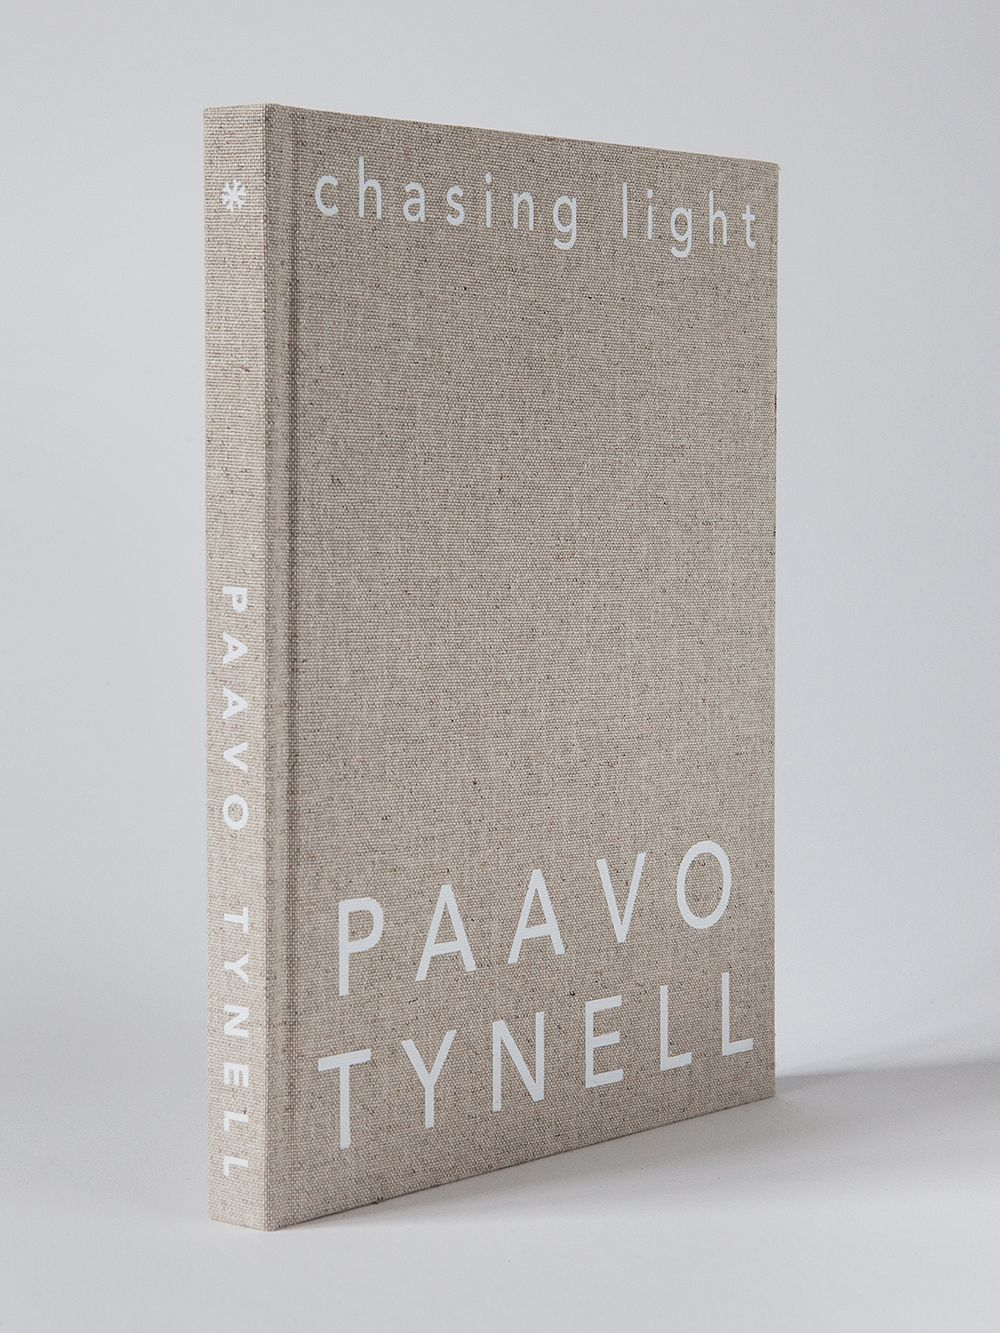 Chasing Light: Archival Photographs and Drawings of Paavo Tynell